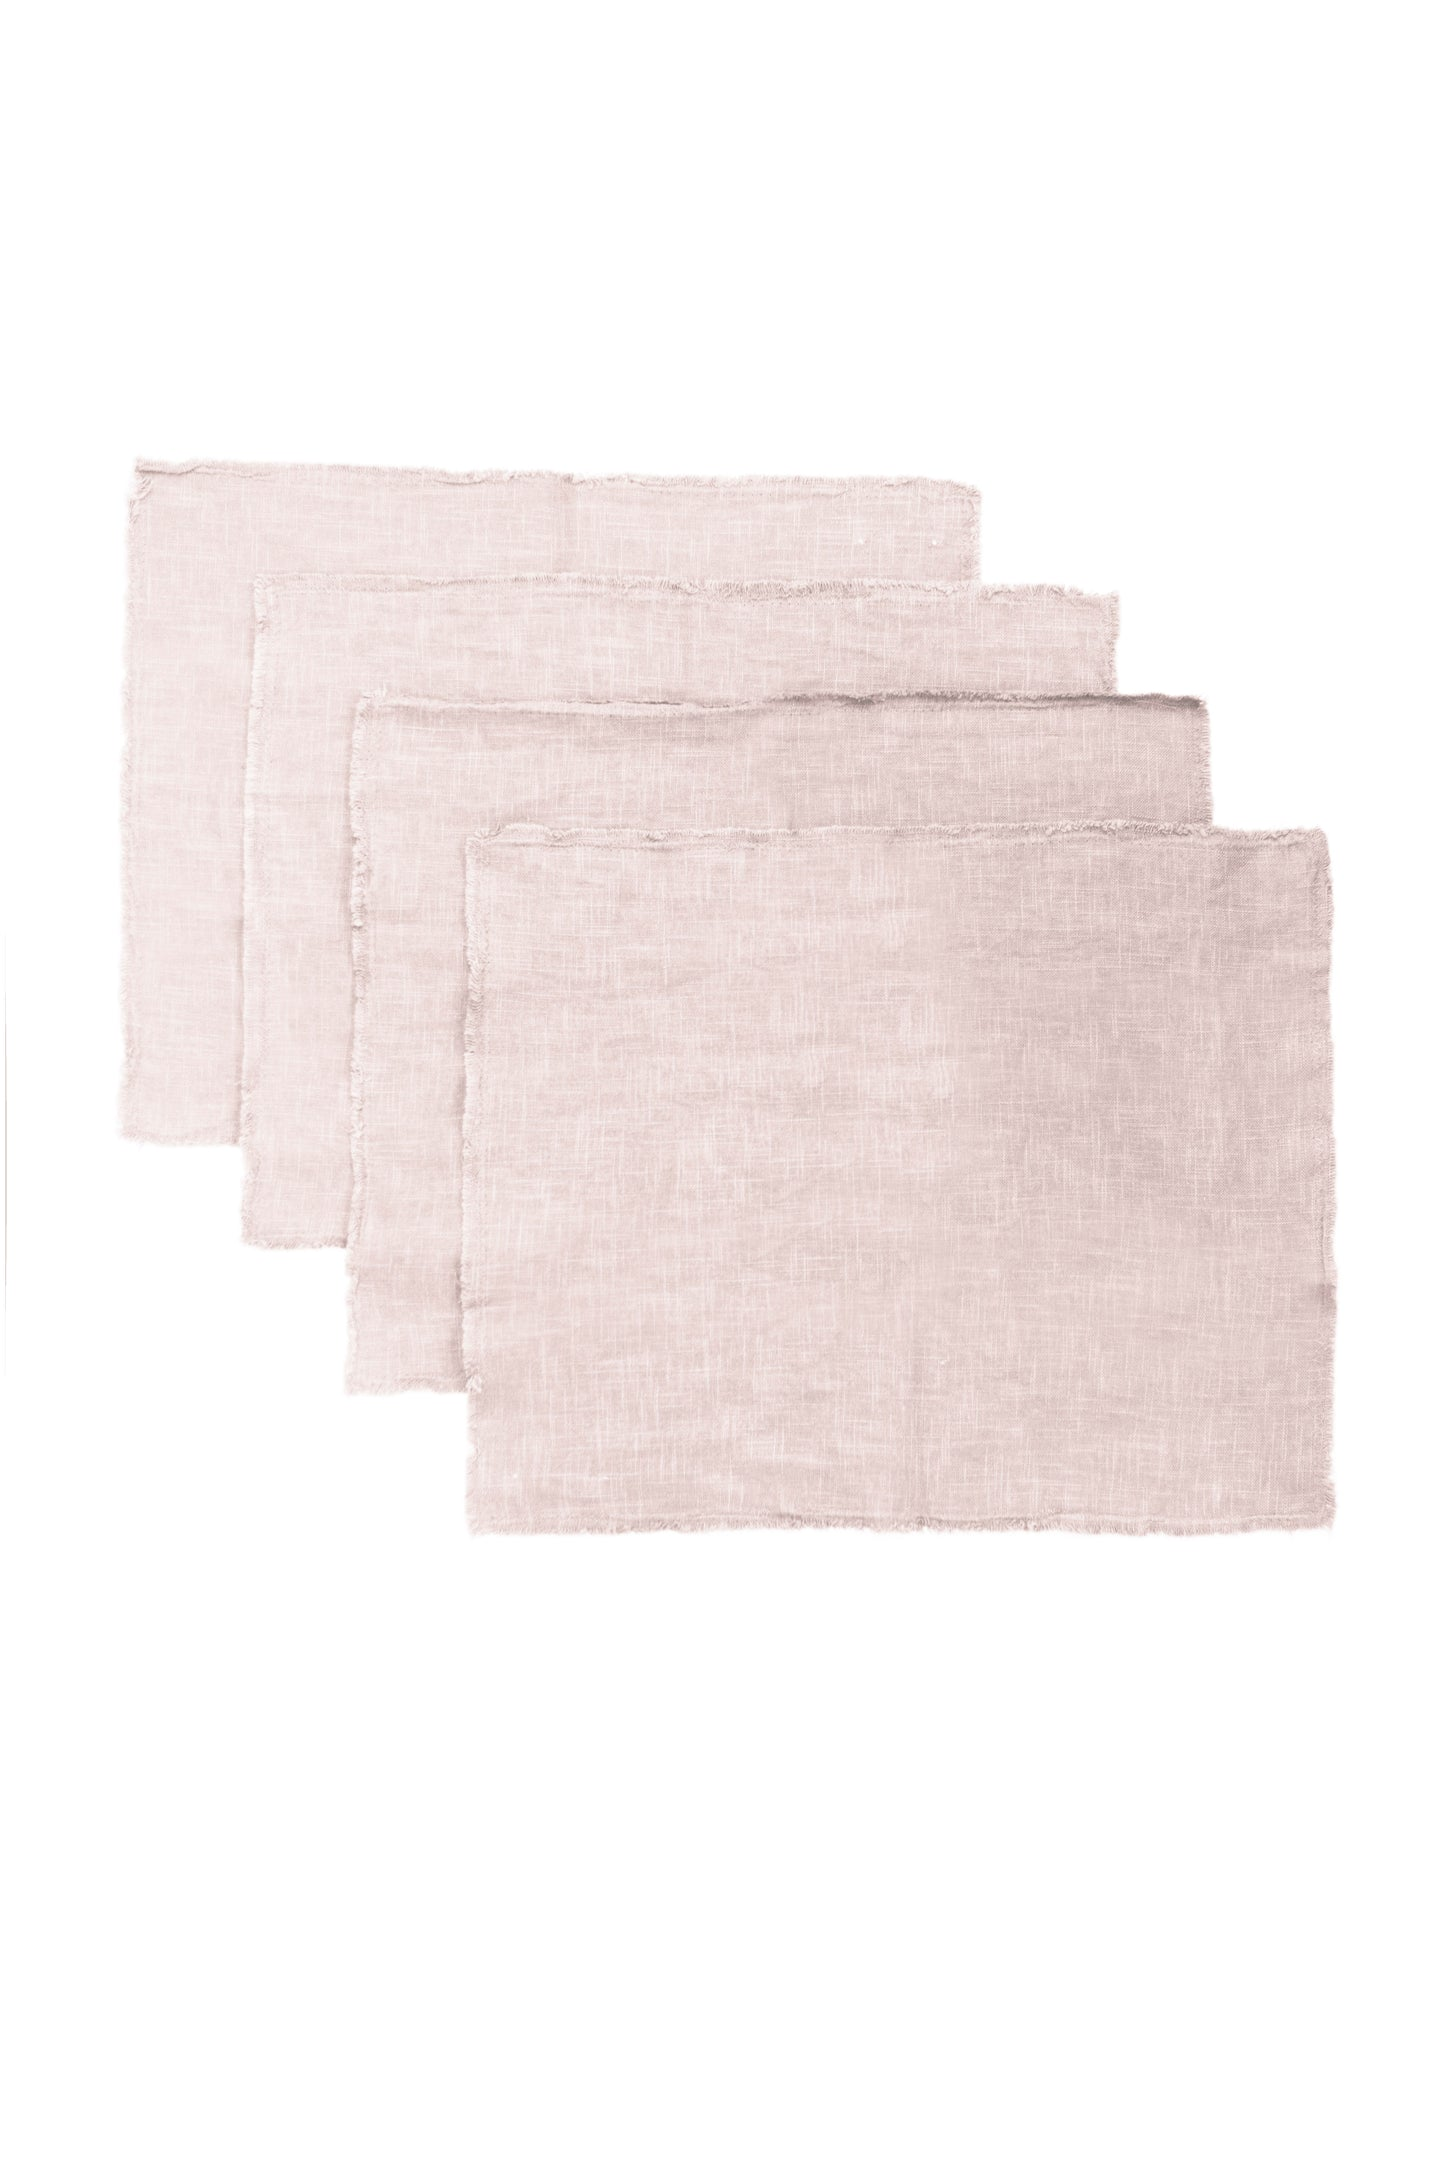 GIANNETTI BLUSH LINEN PLACEMATS (SET OF 4)